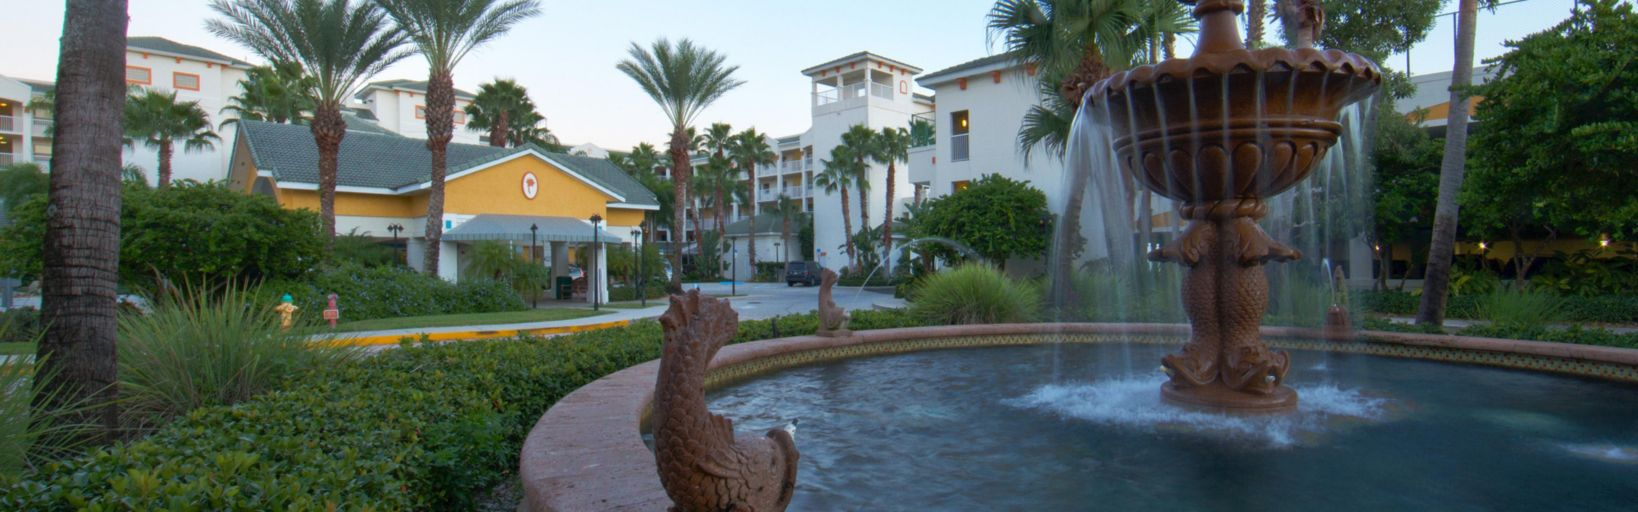 Holiday Inn Club Vacations Cape Canaveral Beach Resort Beautiful Landscaping Surrounding The